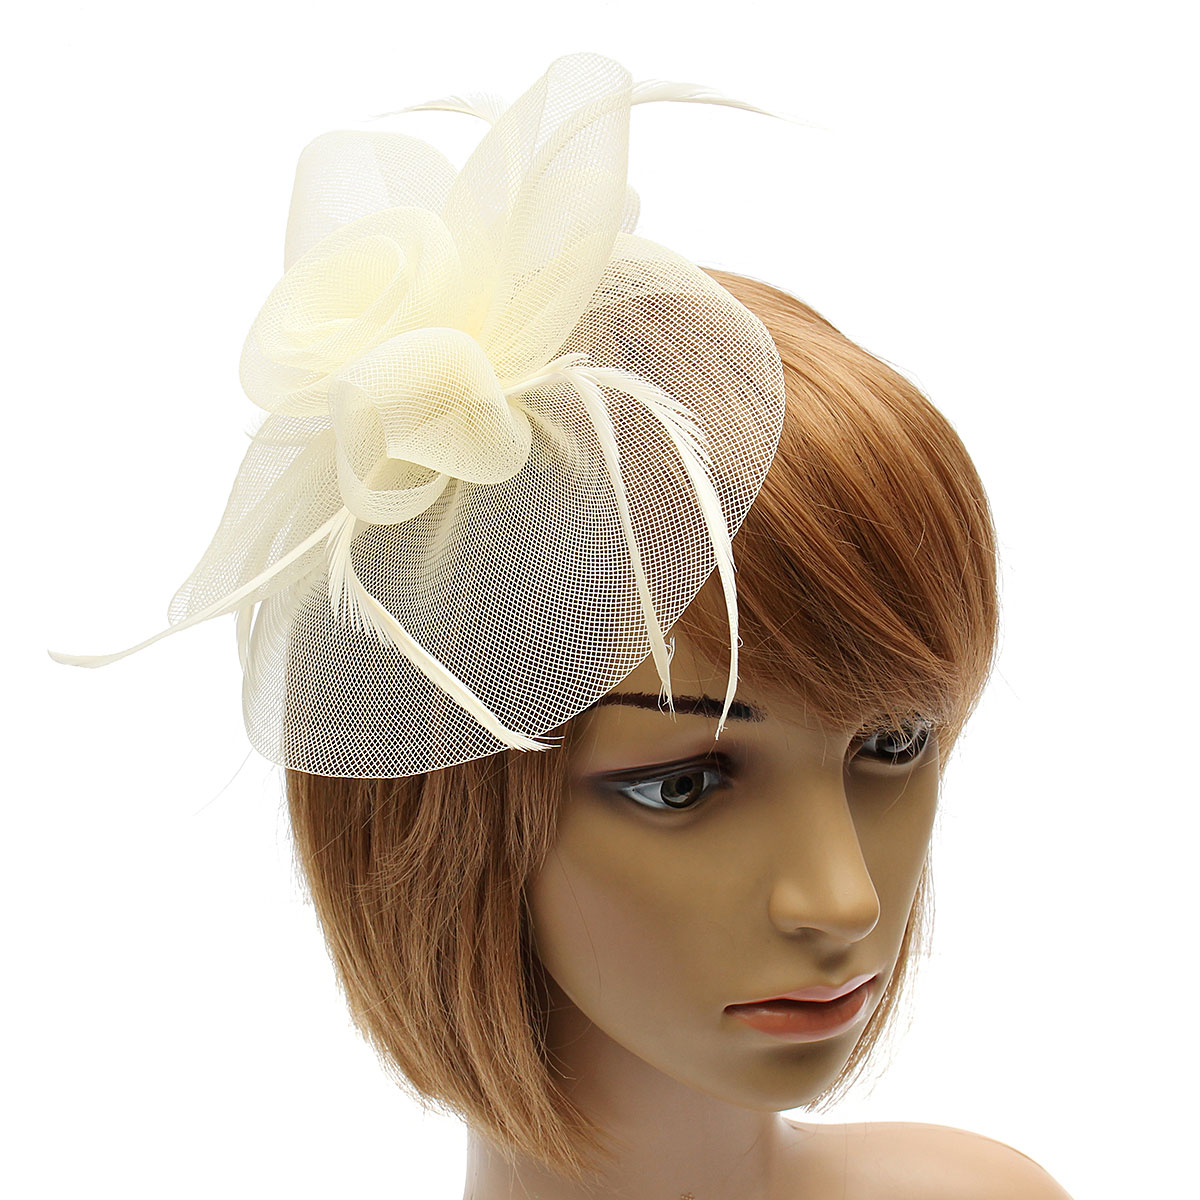 Bride Women Flower Feather Mesh Fascinator Wedding Party Headpieces